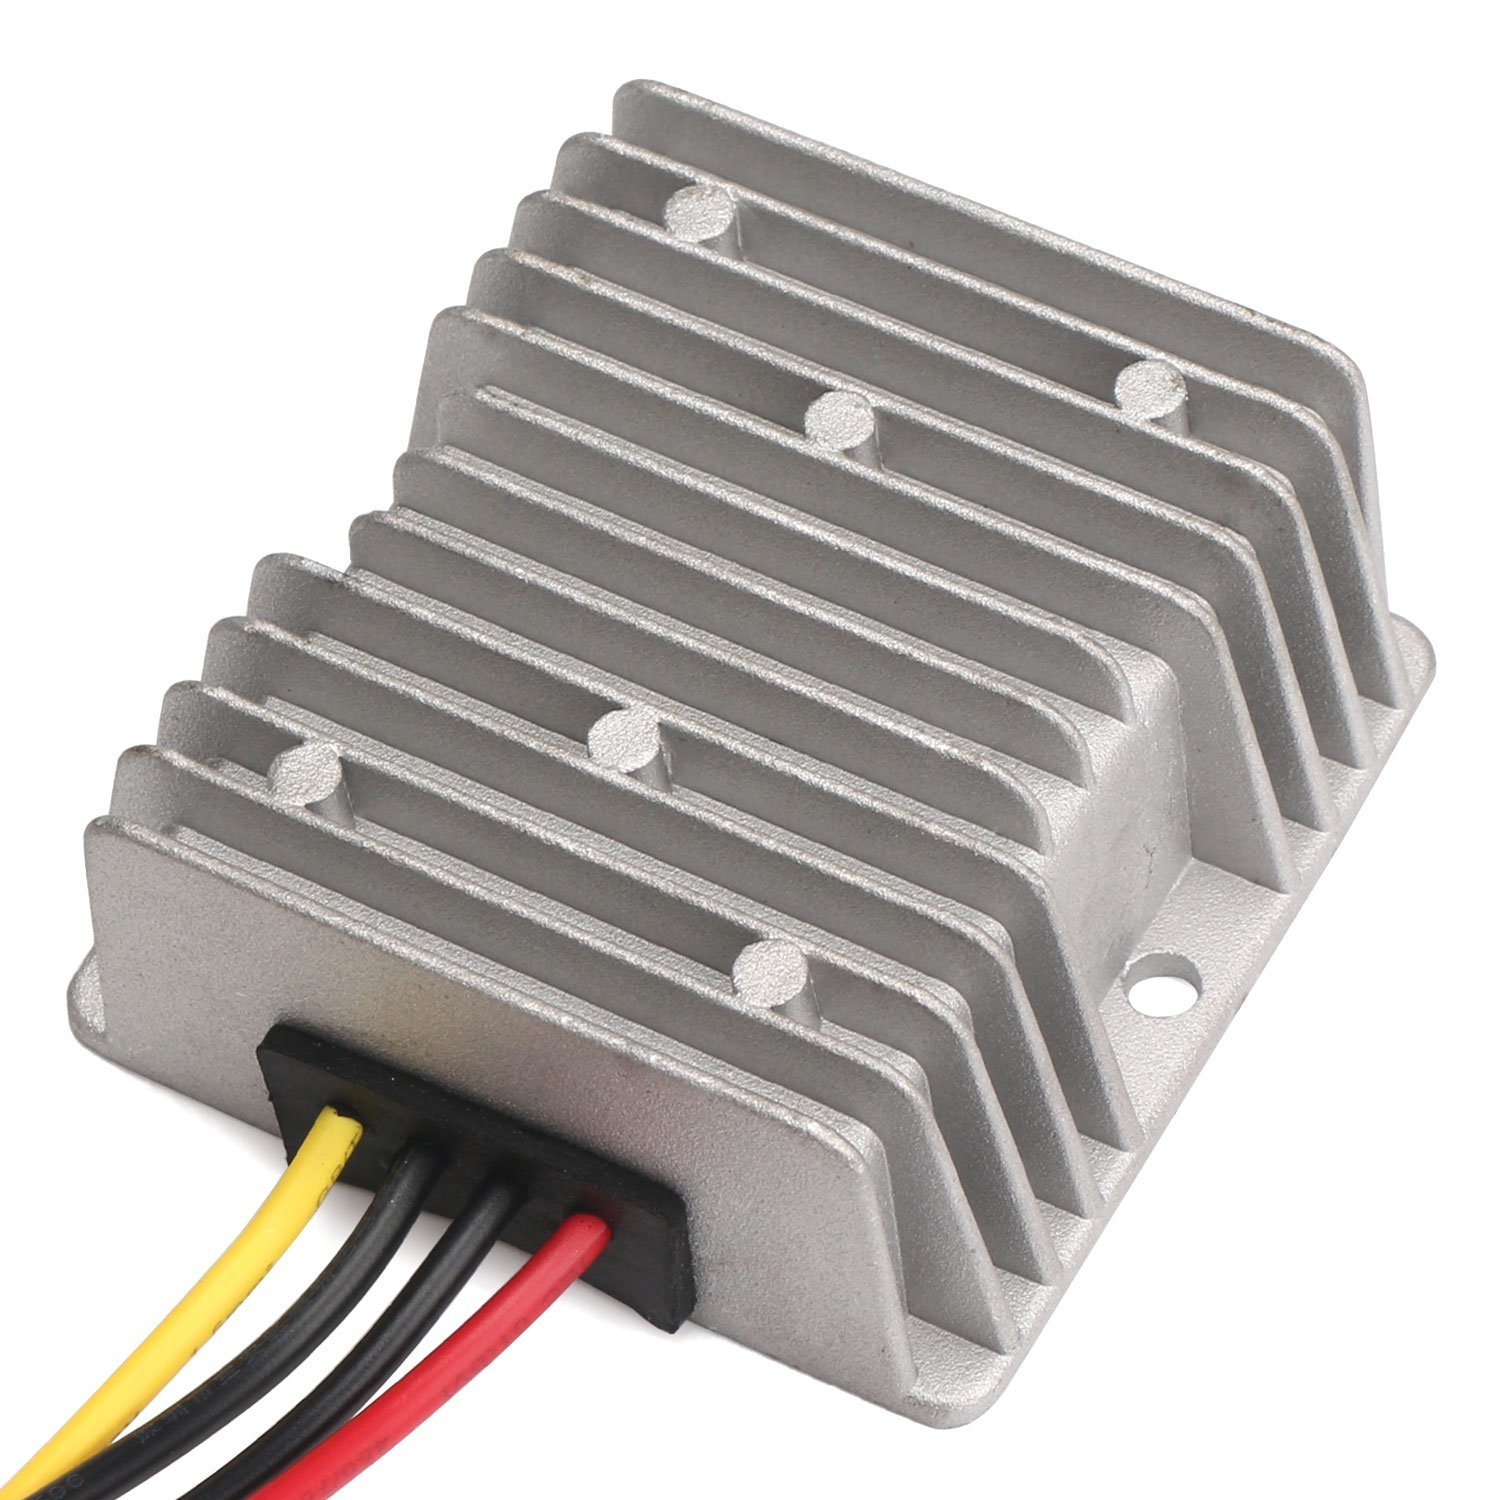 36v 48v To 12v Voltage Reducer Drok 120w 10a Dc Club Car Ds Wiring Diagram Waterproof Step Down Converter 24 60v 24v 36 V 48 12 Buck Regulator Volt